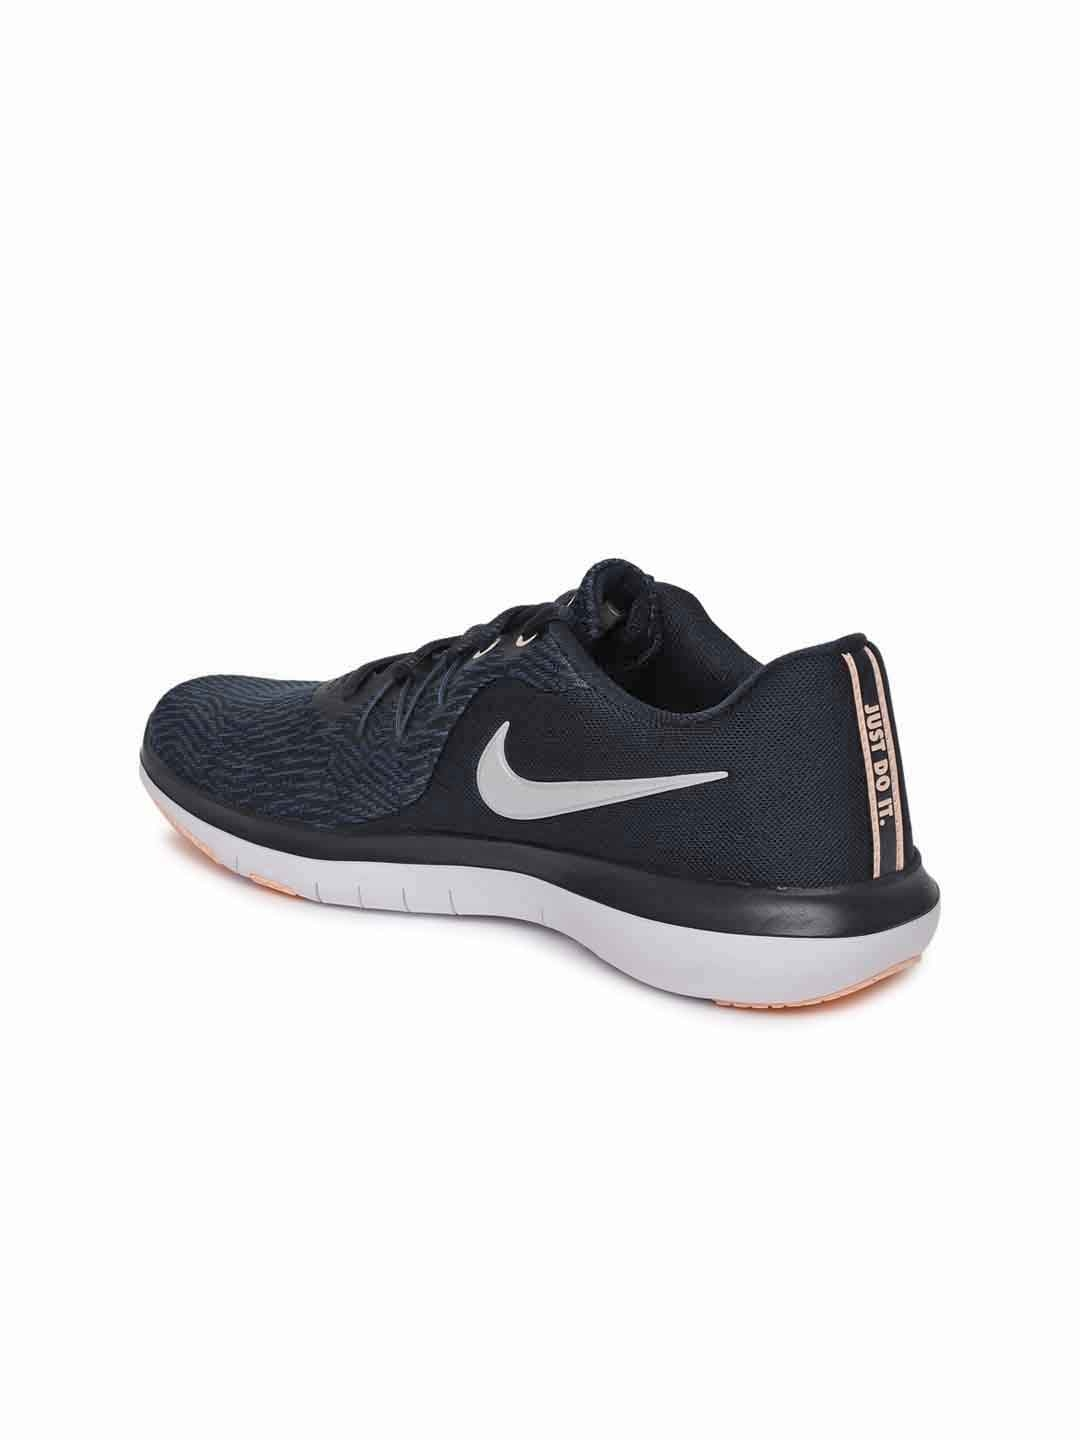 c6b4717707276 Buy Nike Women Navy Blue Flex Supreme TR 6 Training Shoes - Sports ...